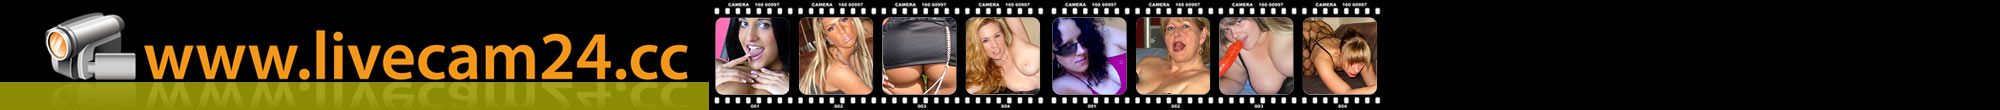 GeileFiona, 27 Jahre, BH: 75 C - valentinstag sex -  - Video Web Cams Live Sex Chat von heissen Girls